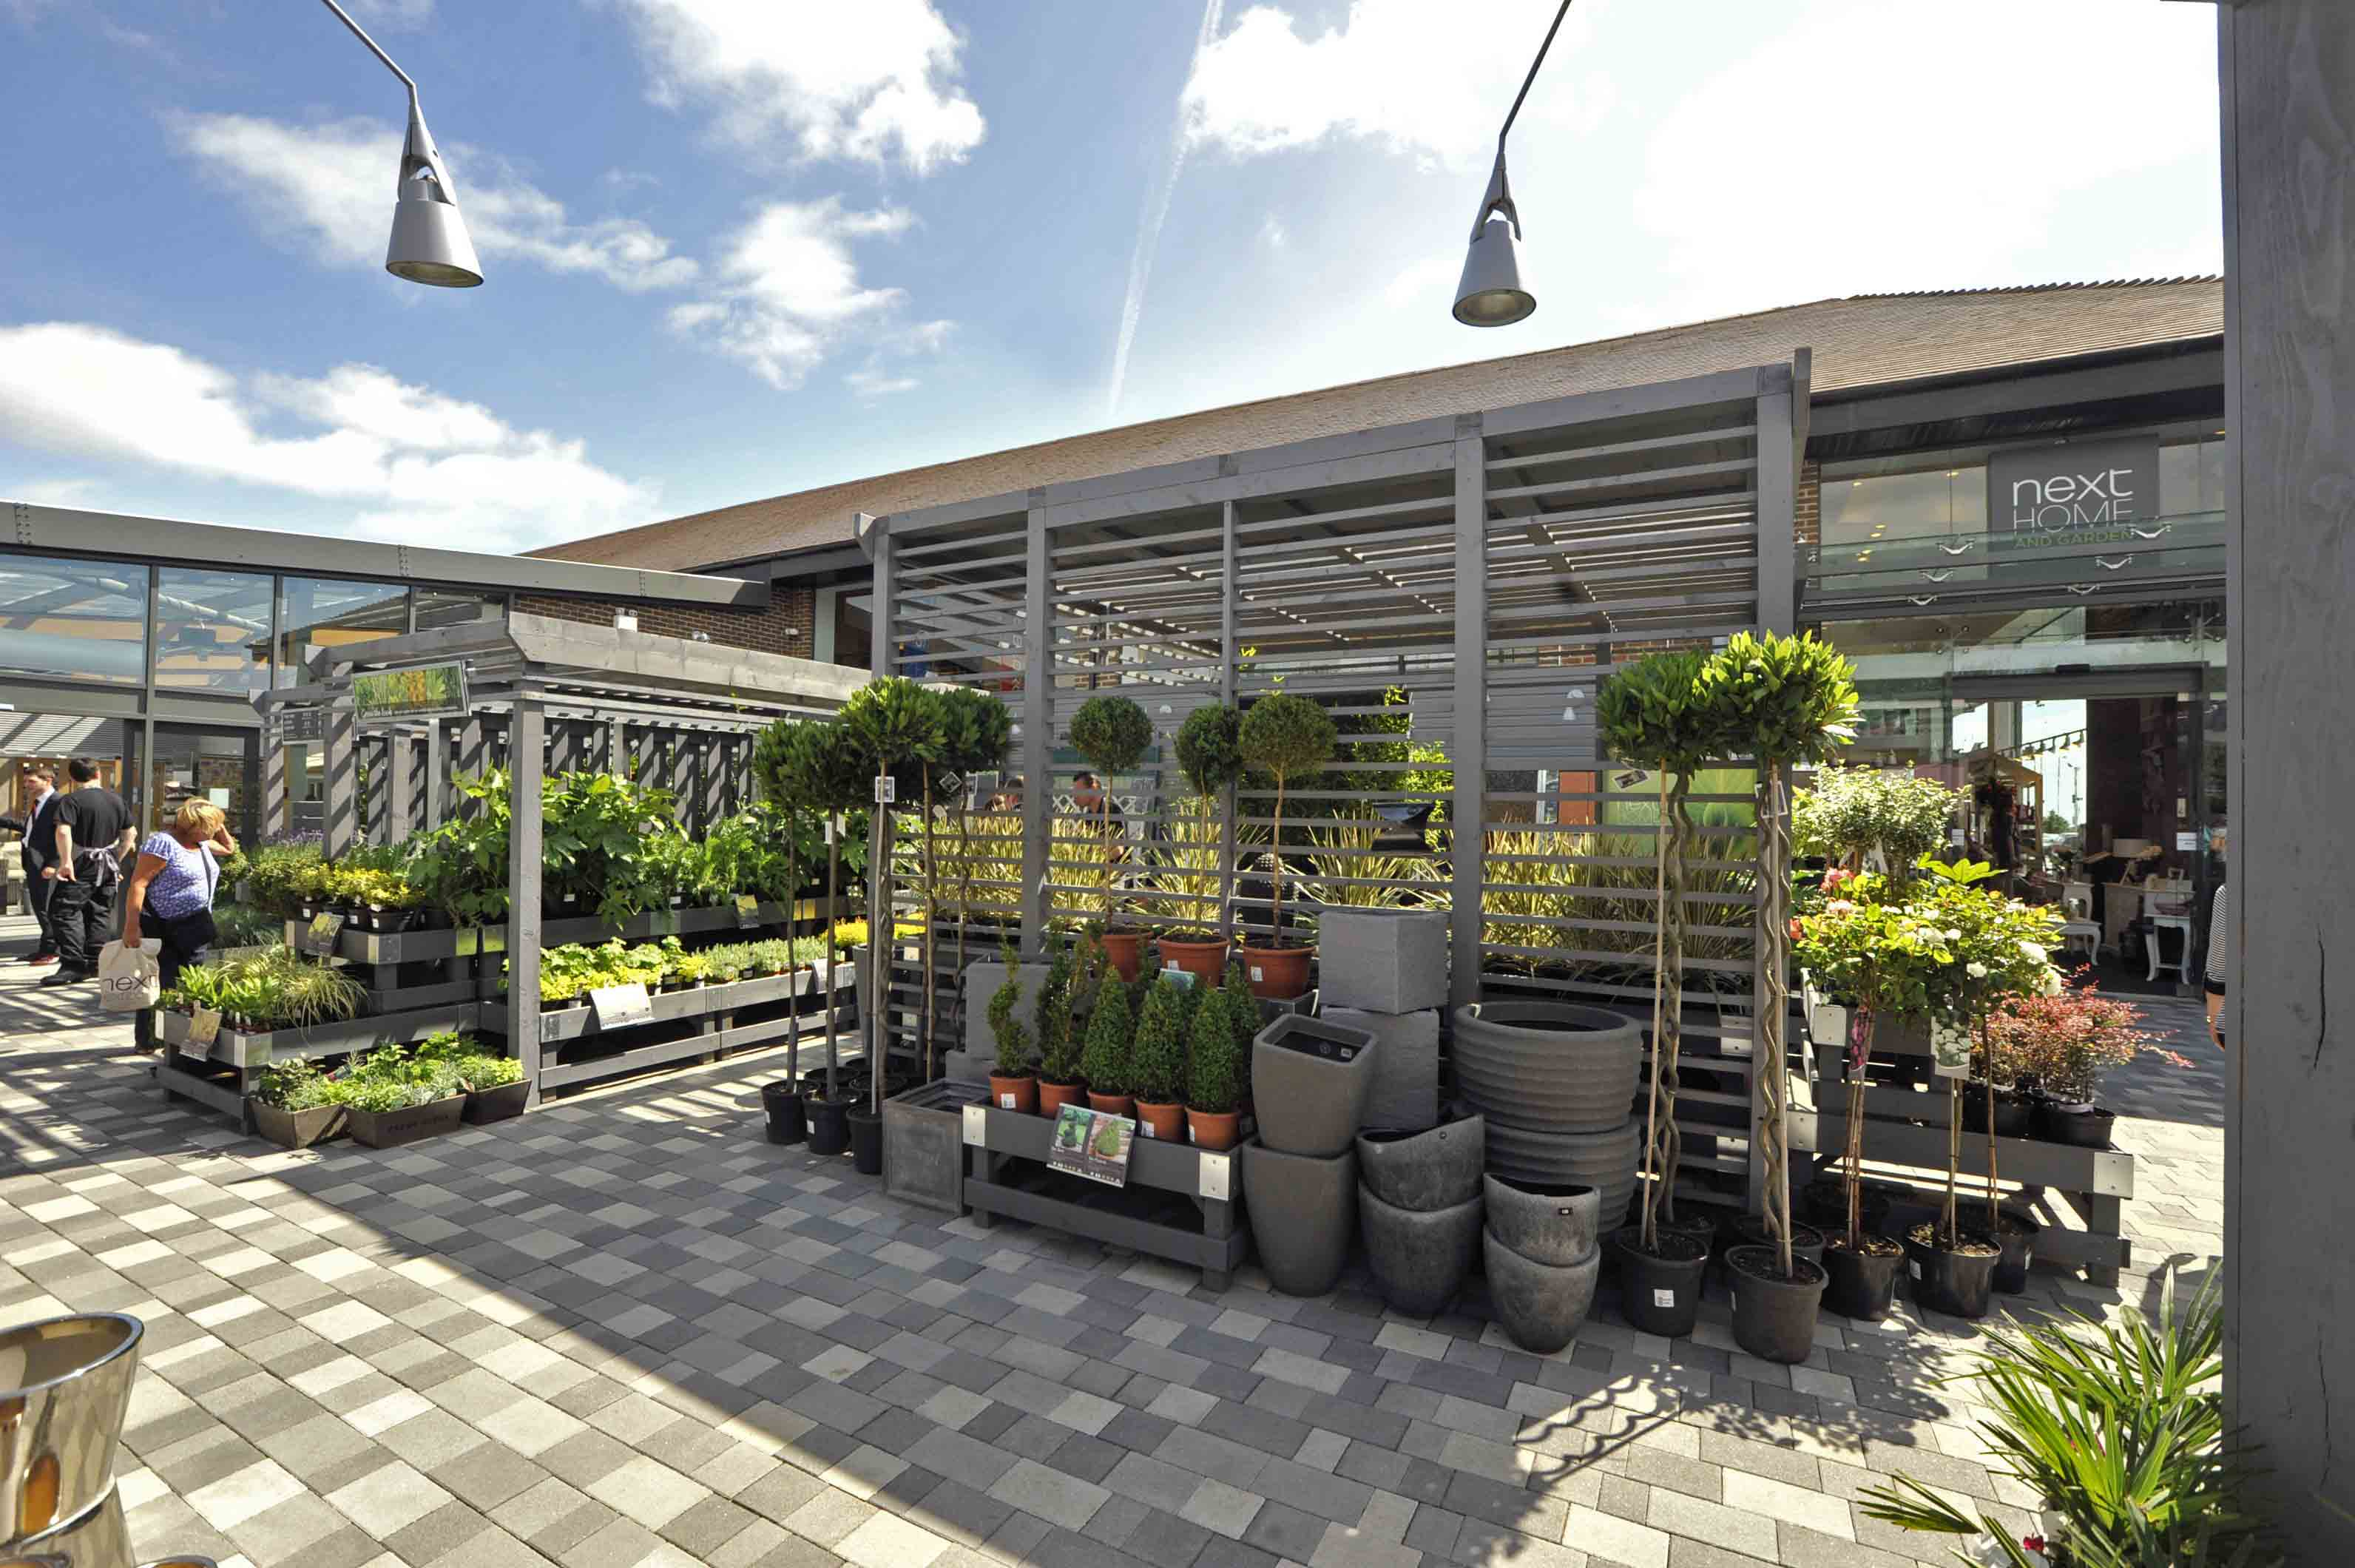 Garden Centre: Fashion Chain Next Opens First Garden Centre